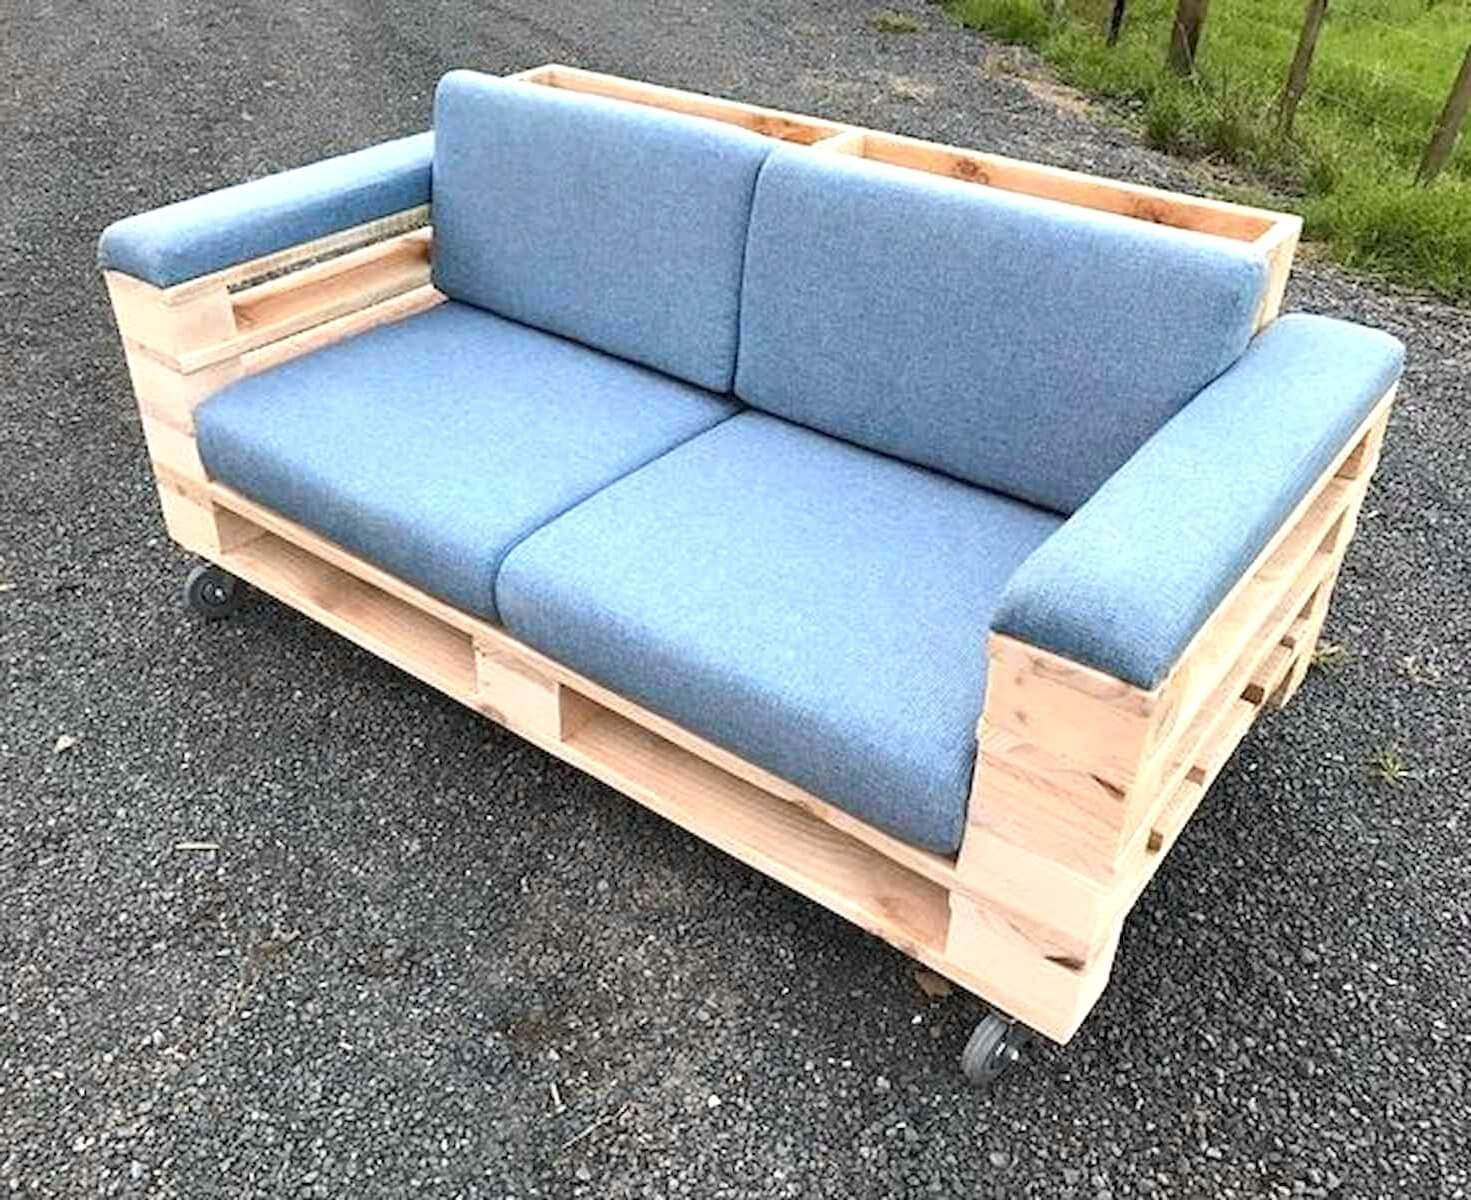 40 Diy Ideas Outdoor Furniture Made From Pallets 84 25 Best Ideas About Pallet Outdoor Pallet Patio Furniture Pallet Furniture Outdoor Pallet Furniture Designs